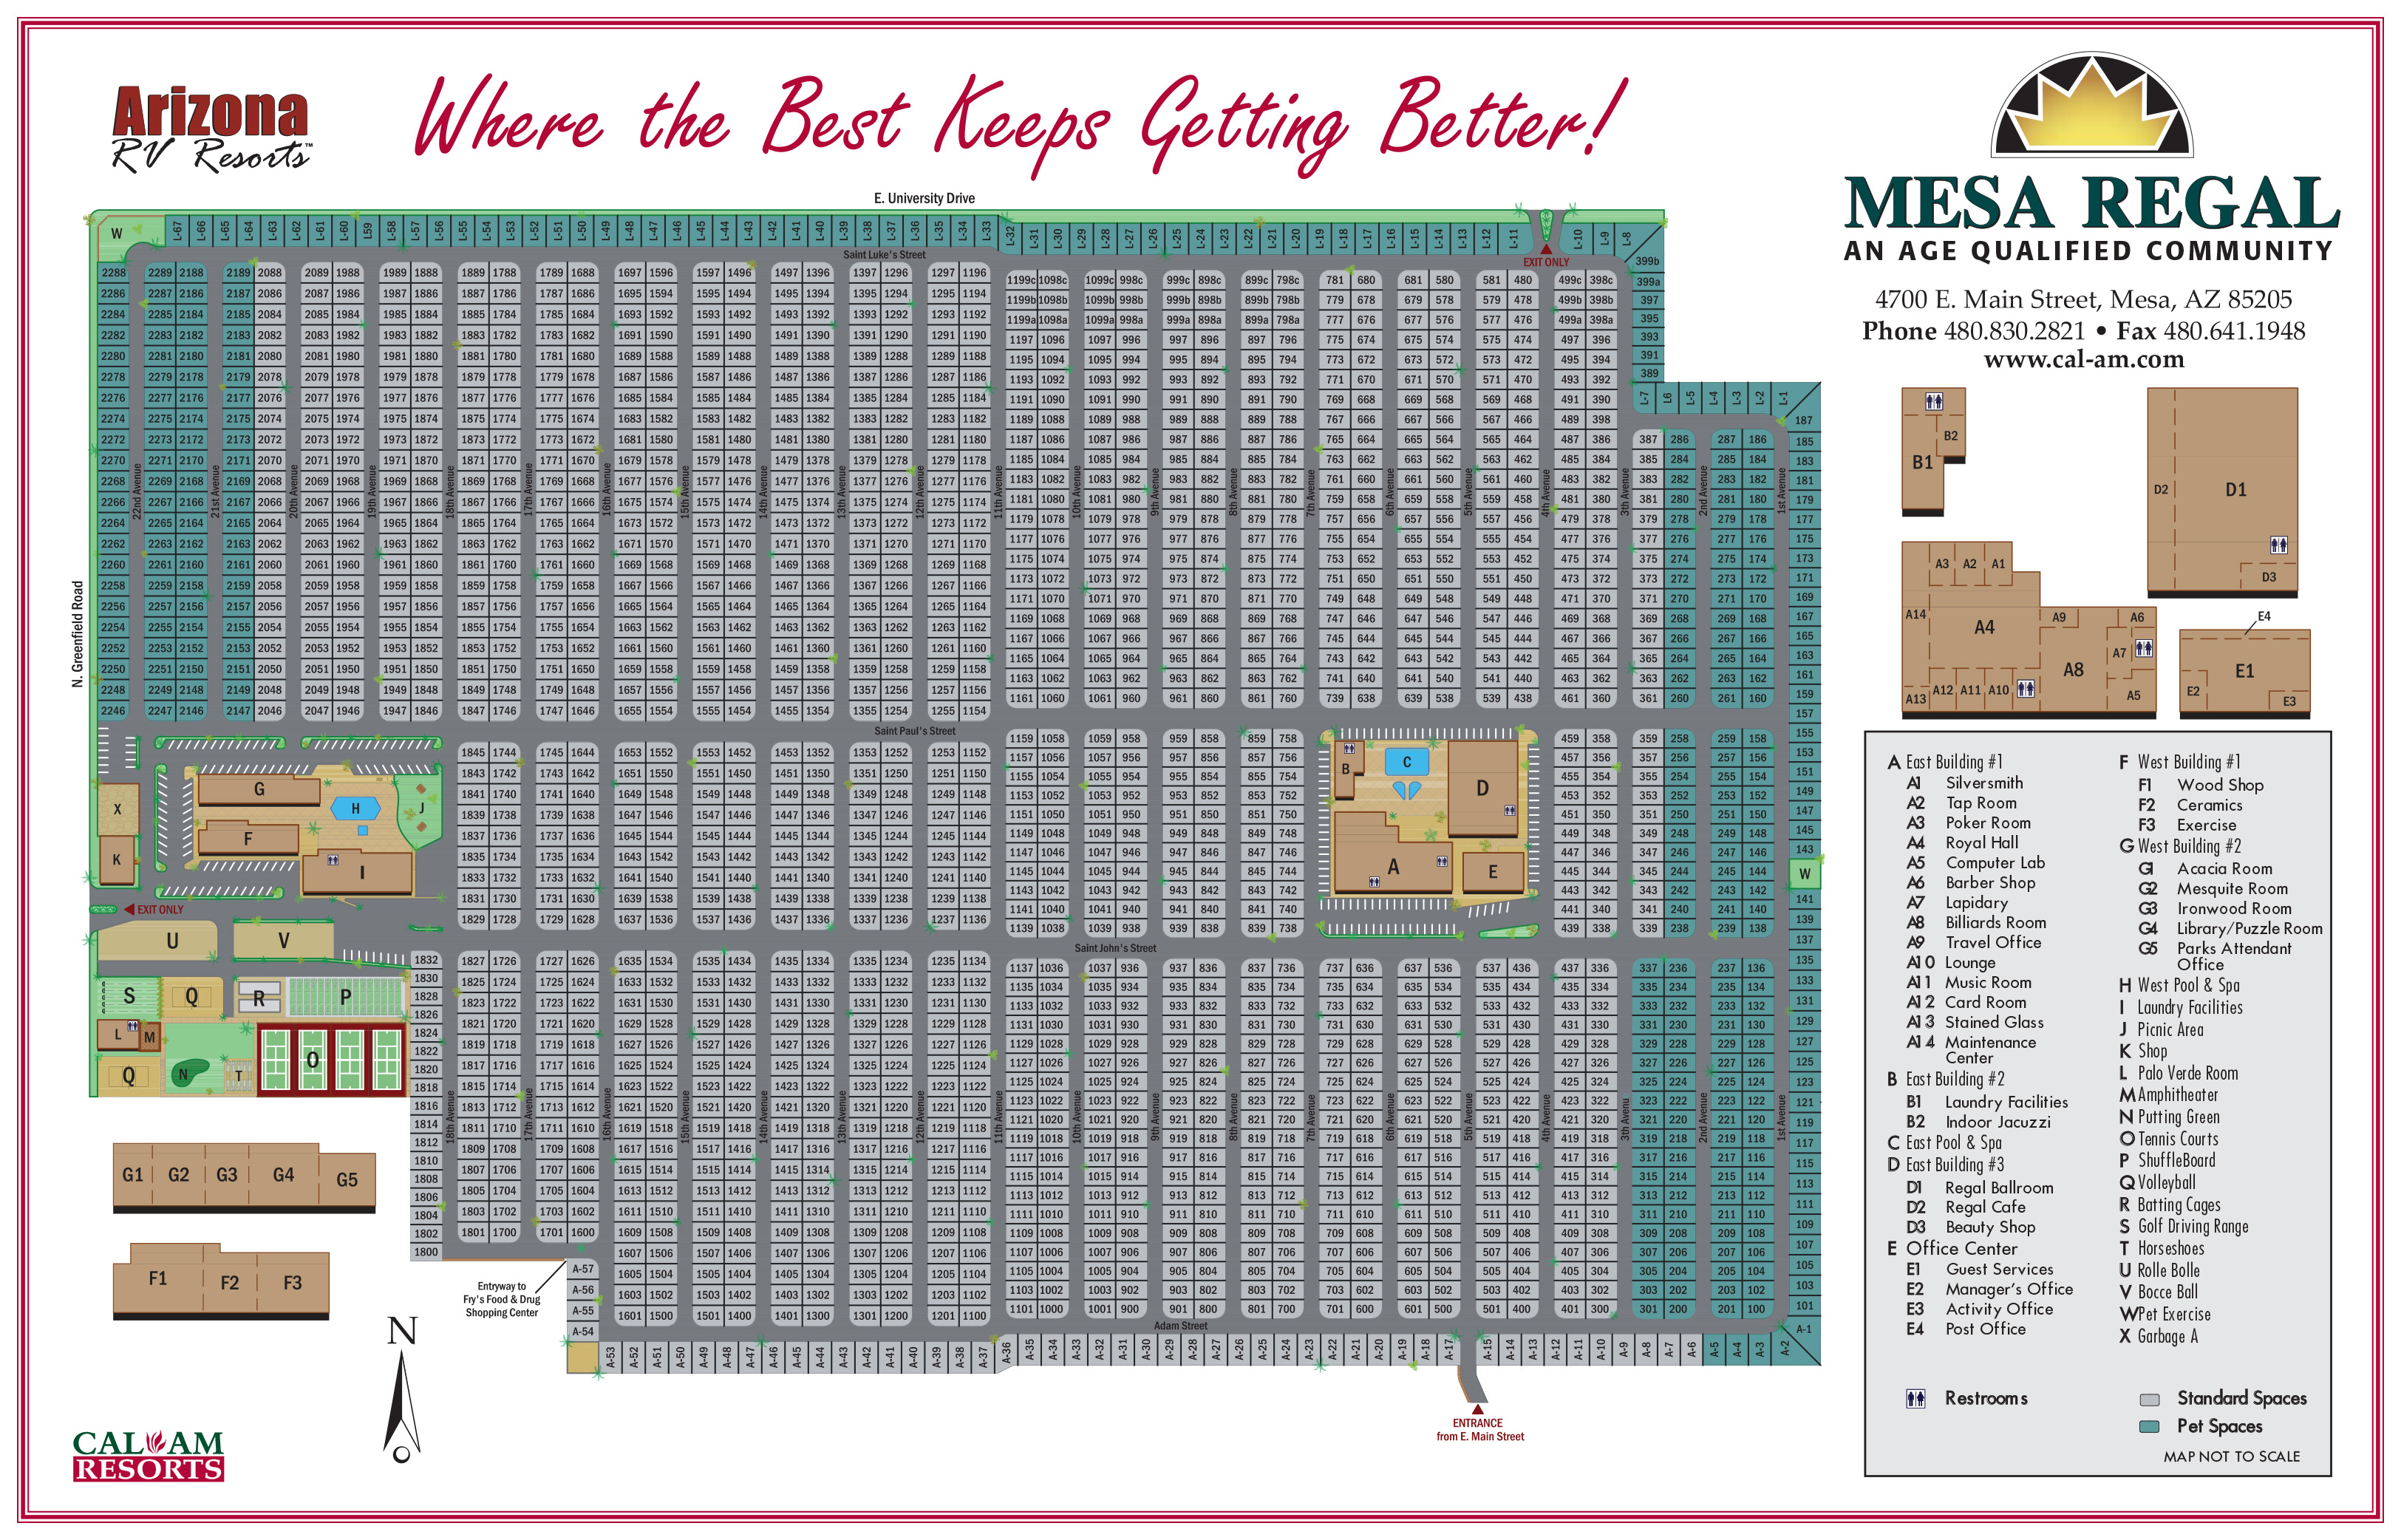 mesa regal rv resort in mesa az for 55 park model homes for sale